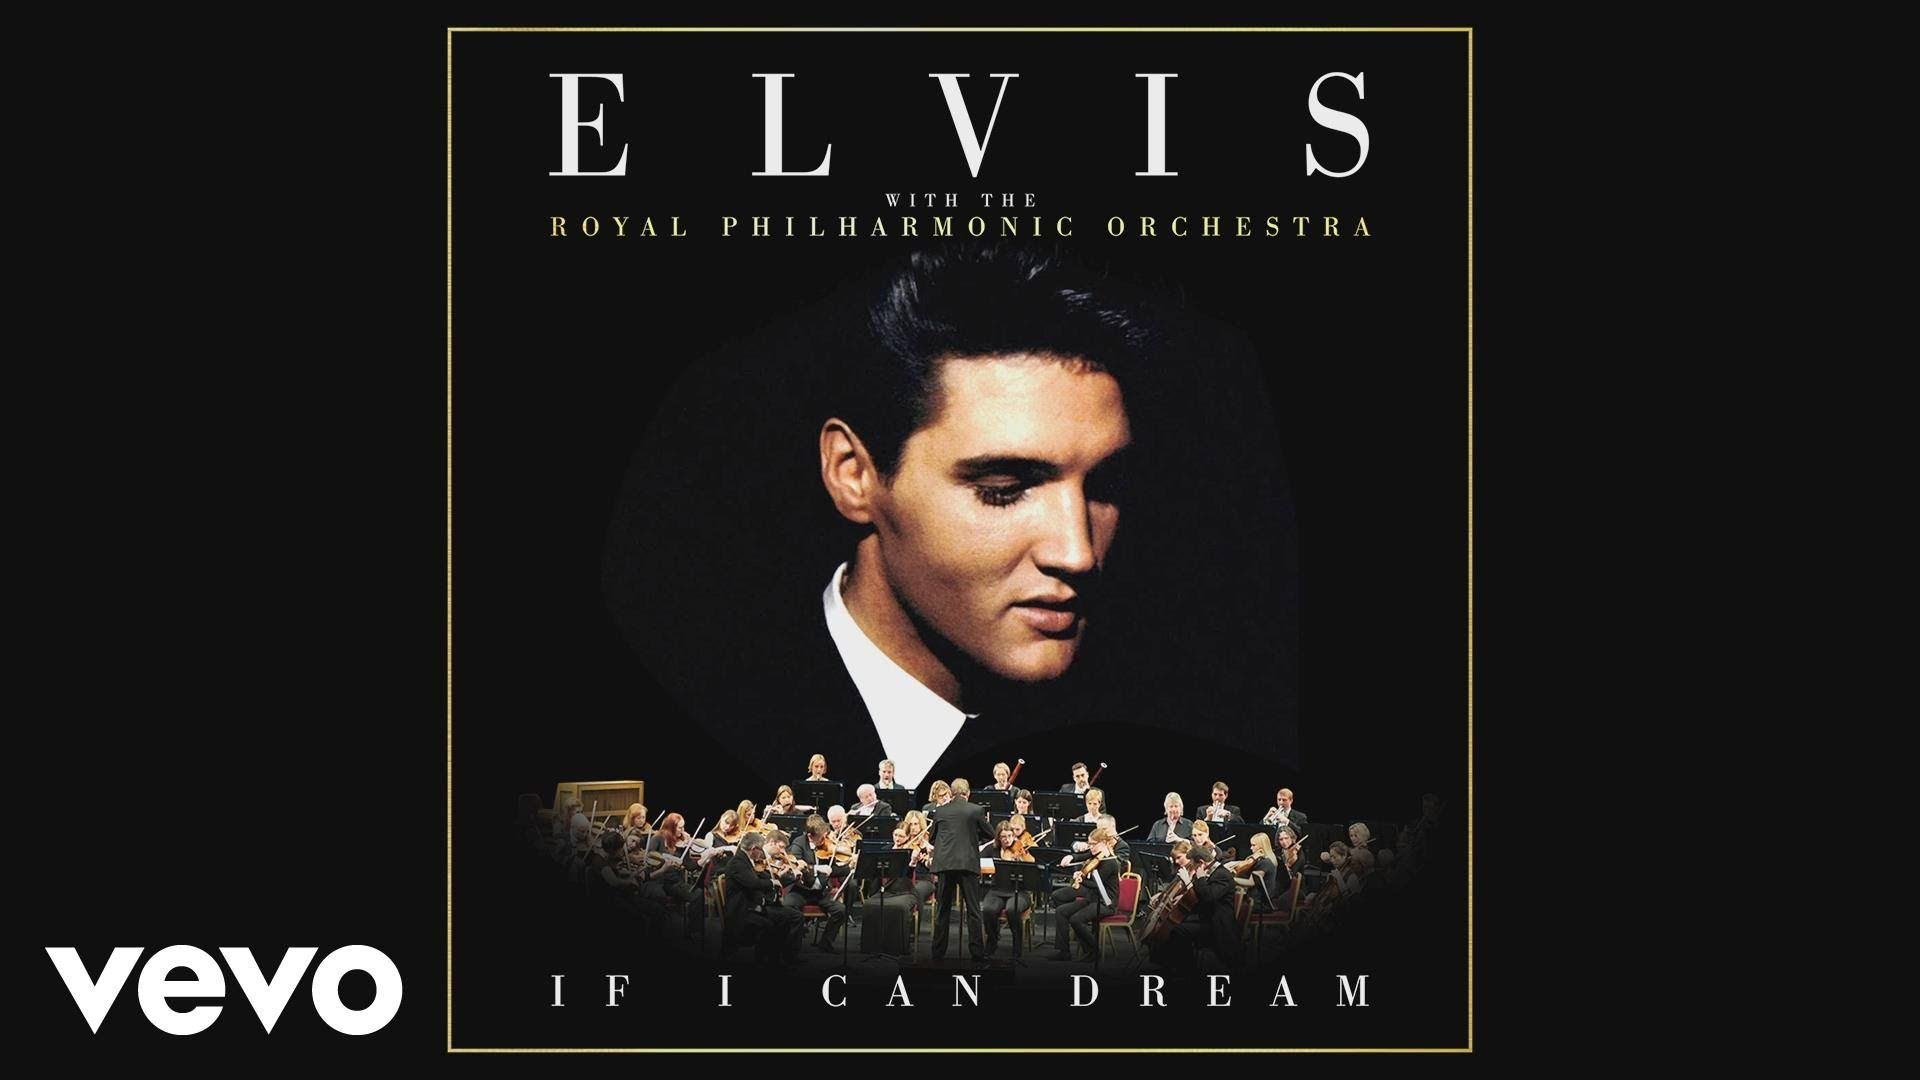 Elvis Presley - If I Can Dream (With The Royal Philharmonic Orchestra) [...